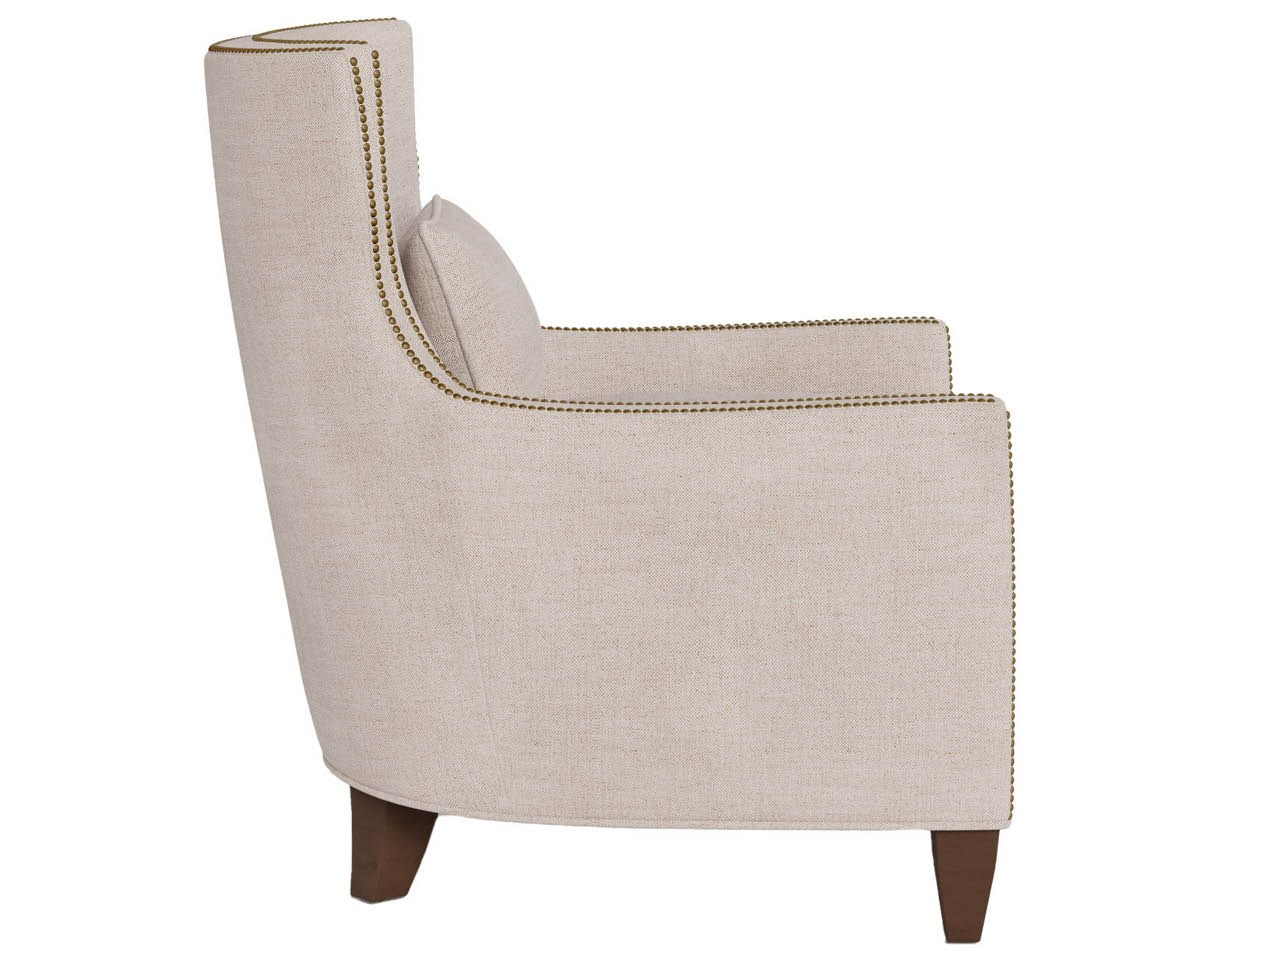 Barrister Accent Chair - Special Order